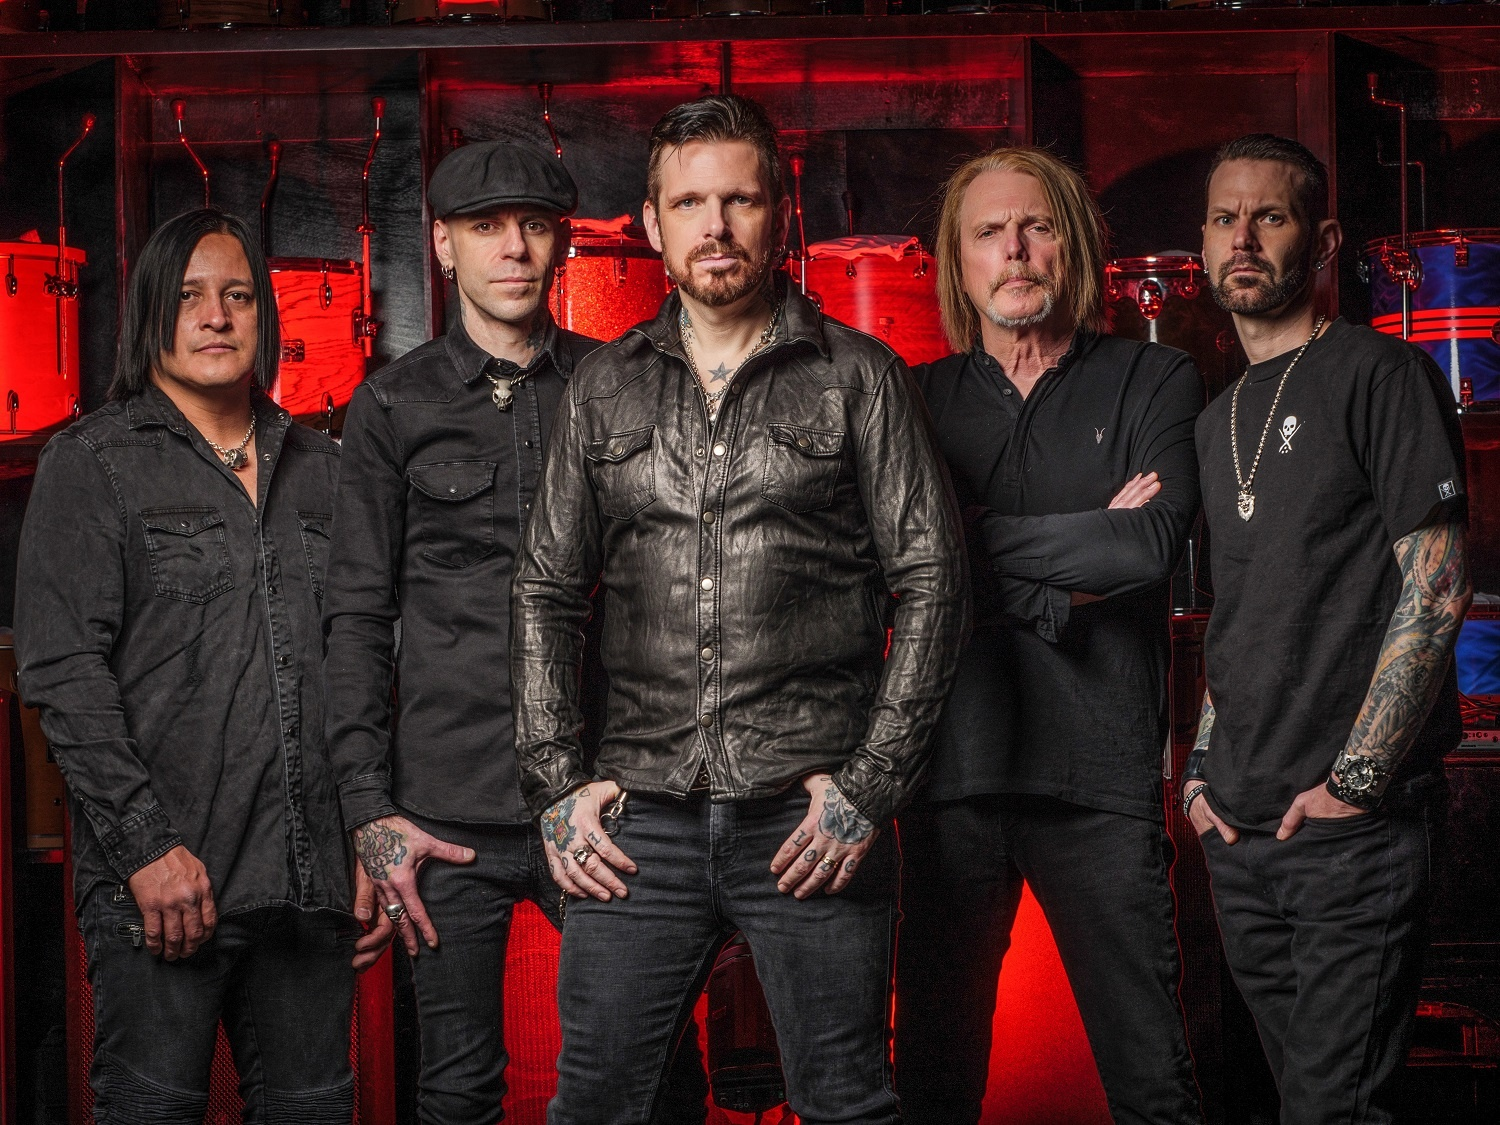 Black Star Riders Release Video For New Single 'Another State Of Grace'